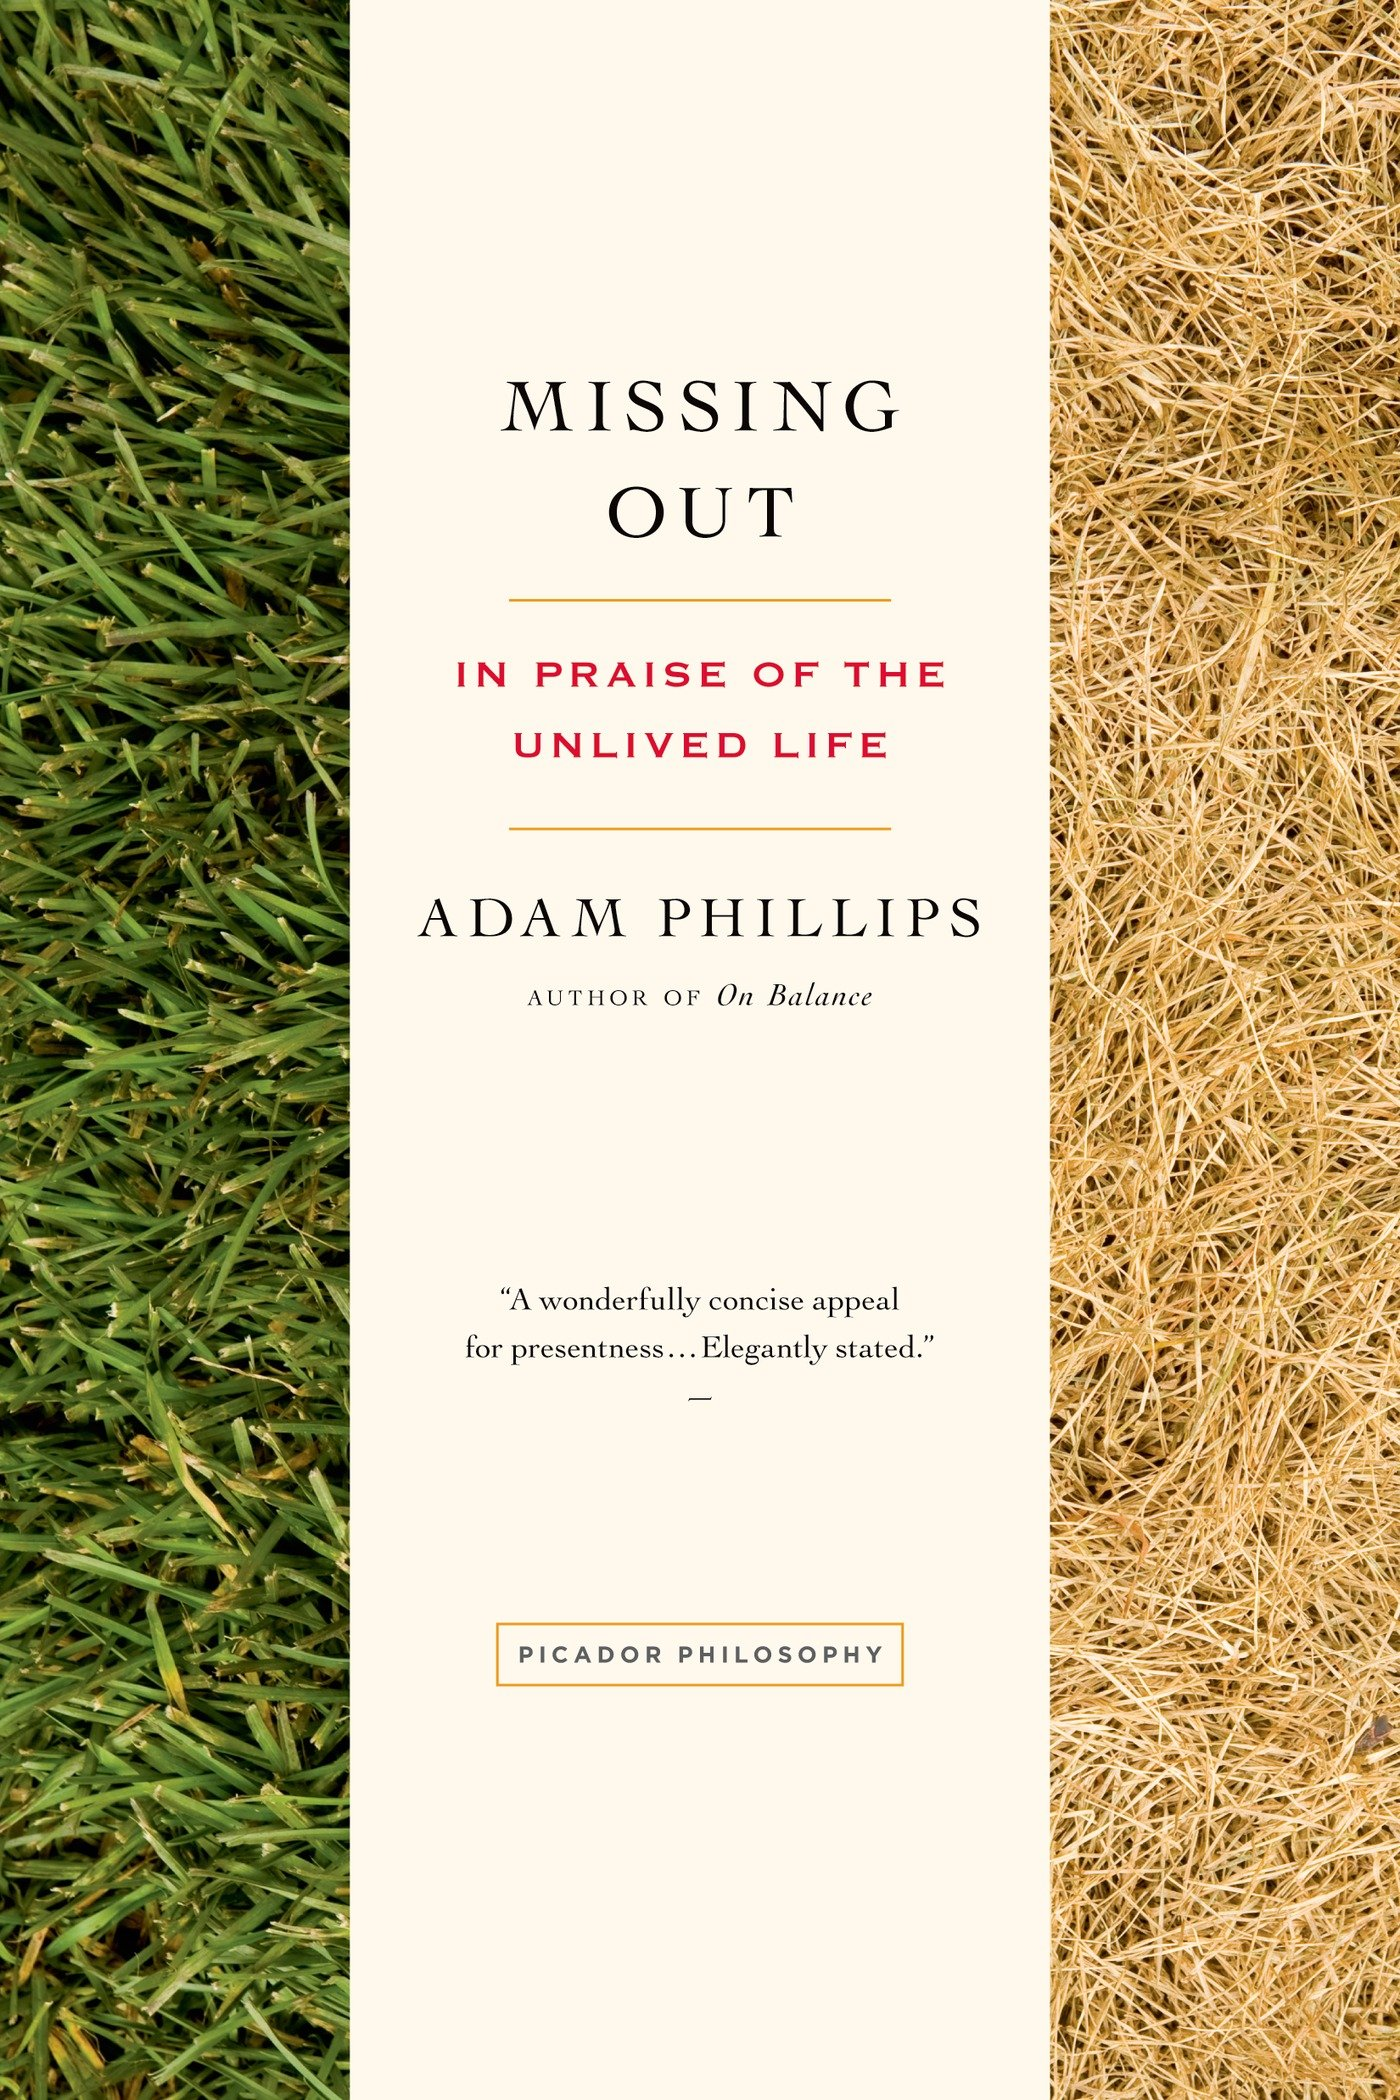 In Praise of Missing Out: Psychoanalyst Adam Phillips on the Paradoxical Value of Our Unlived Lives